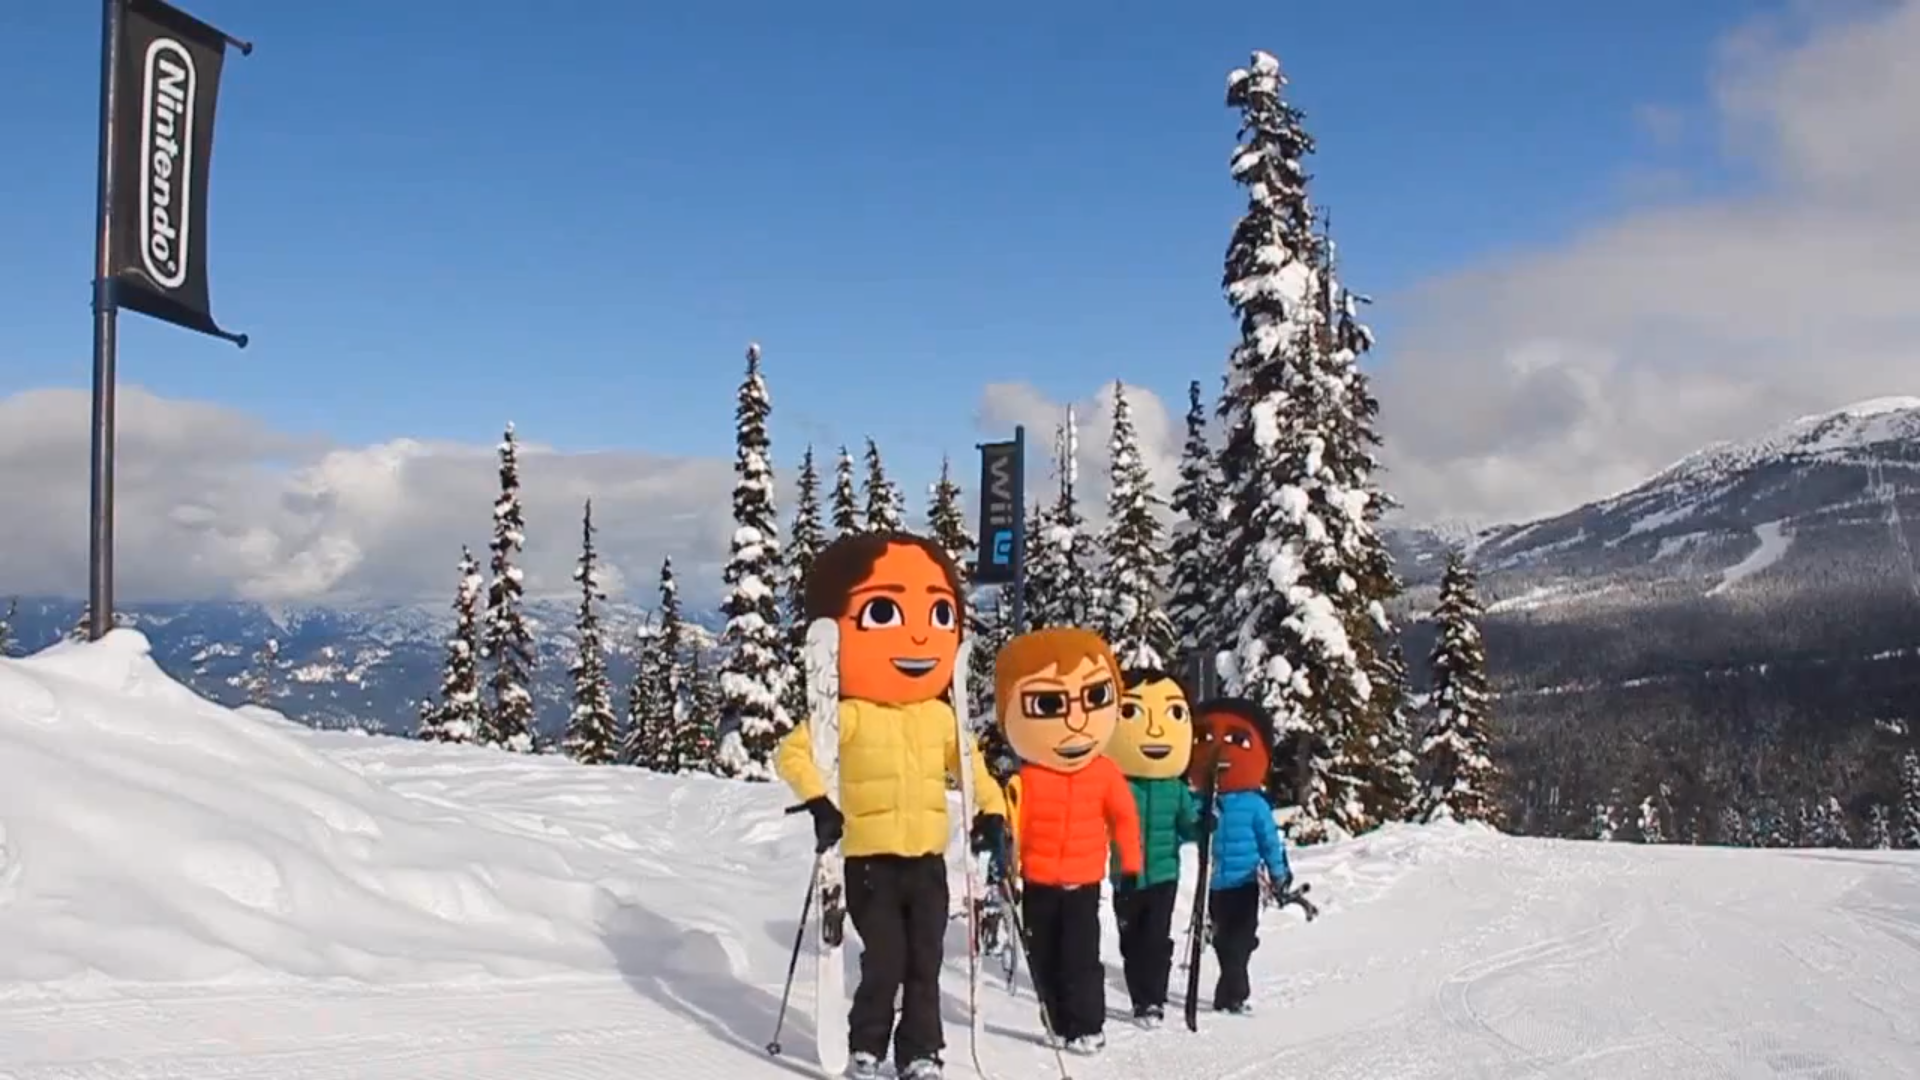 The Miis take a snow day at Whistler Blackcomb